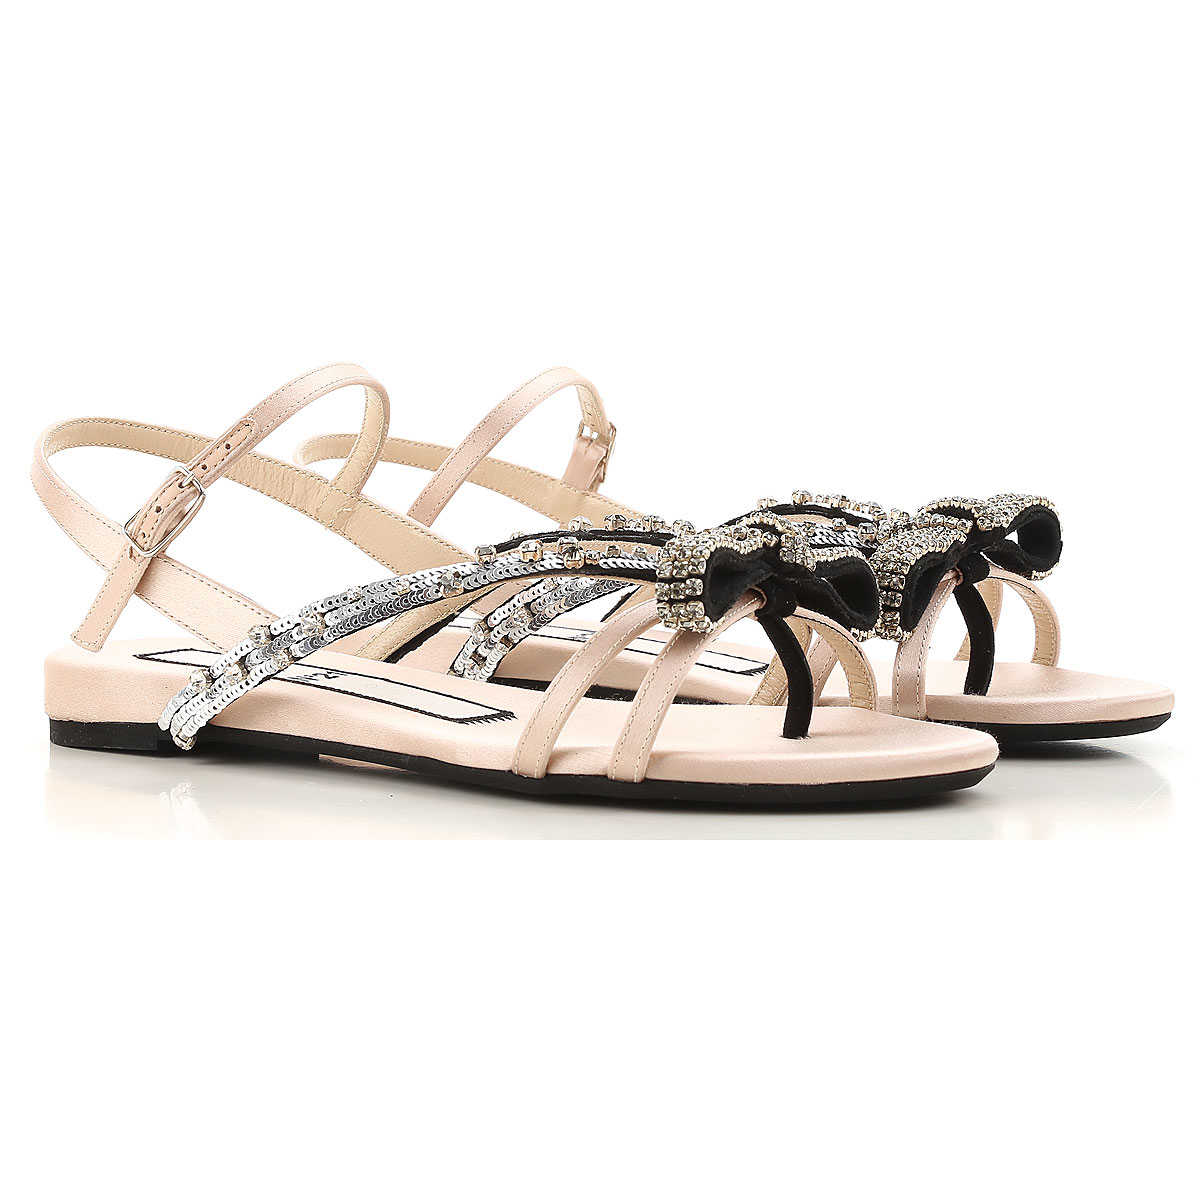 NO 21 Sandals for Women On Sale in Outlet